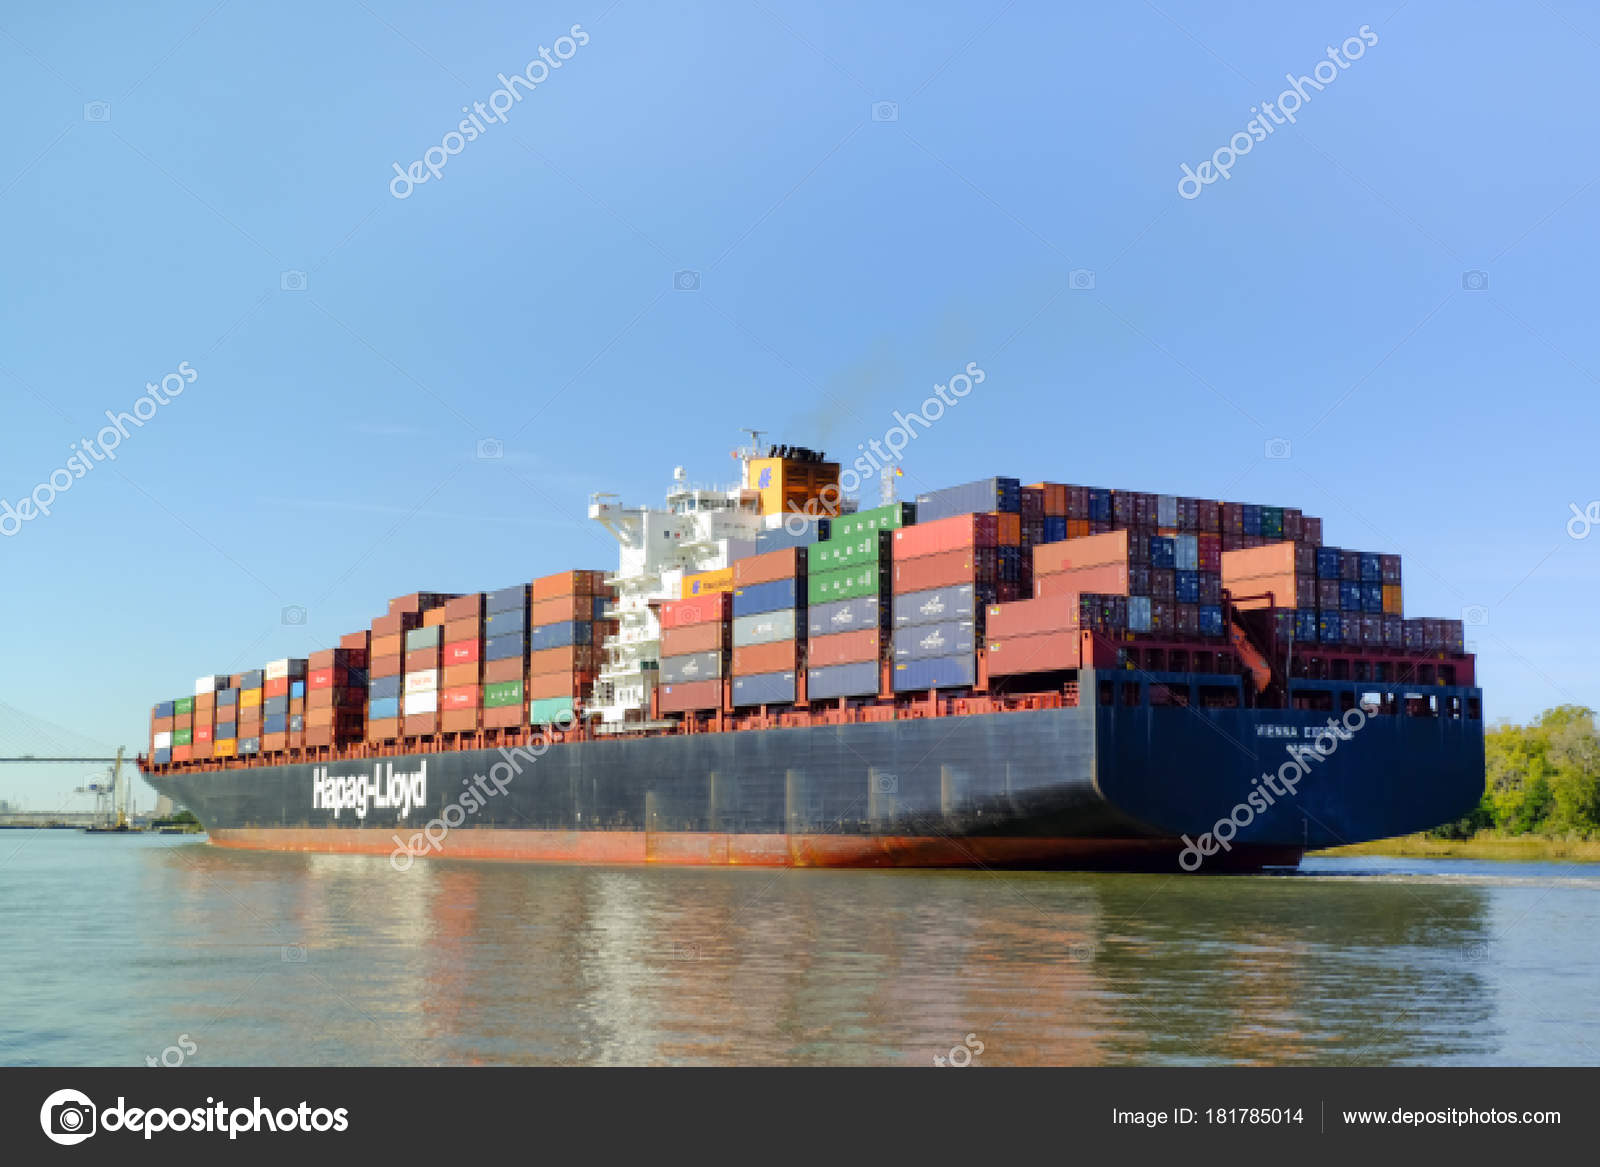 Huge container ship – Stock Editorial Photo © irkin09 #181785014